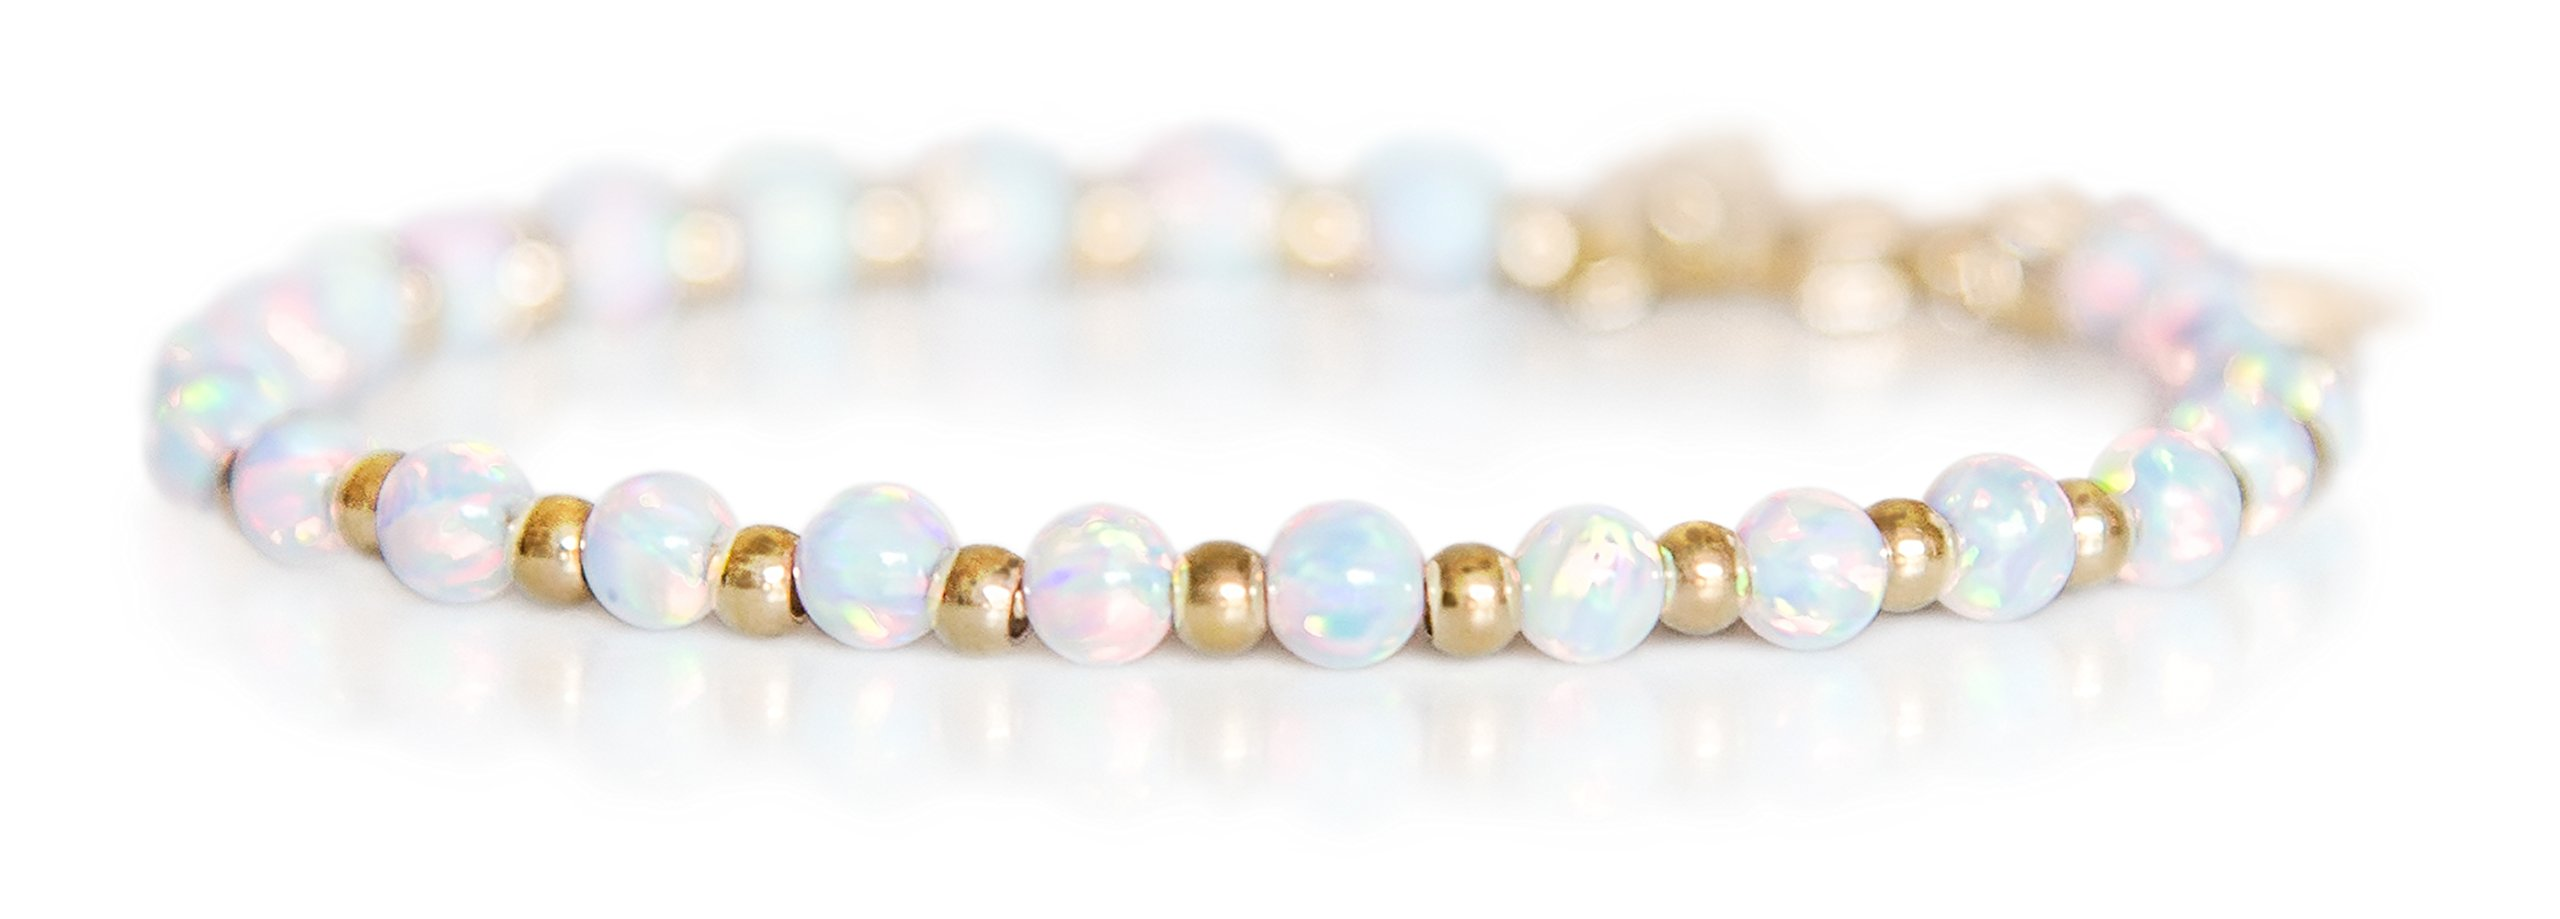 Benevolence LA Opal Bracelet: Gold Bracelets for Women Luminous 4mm White Fire Opal + 14k Dipped Gold Beads